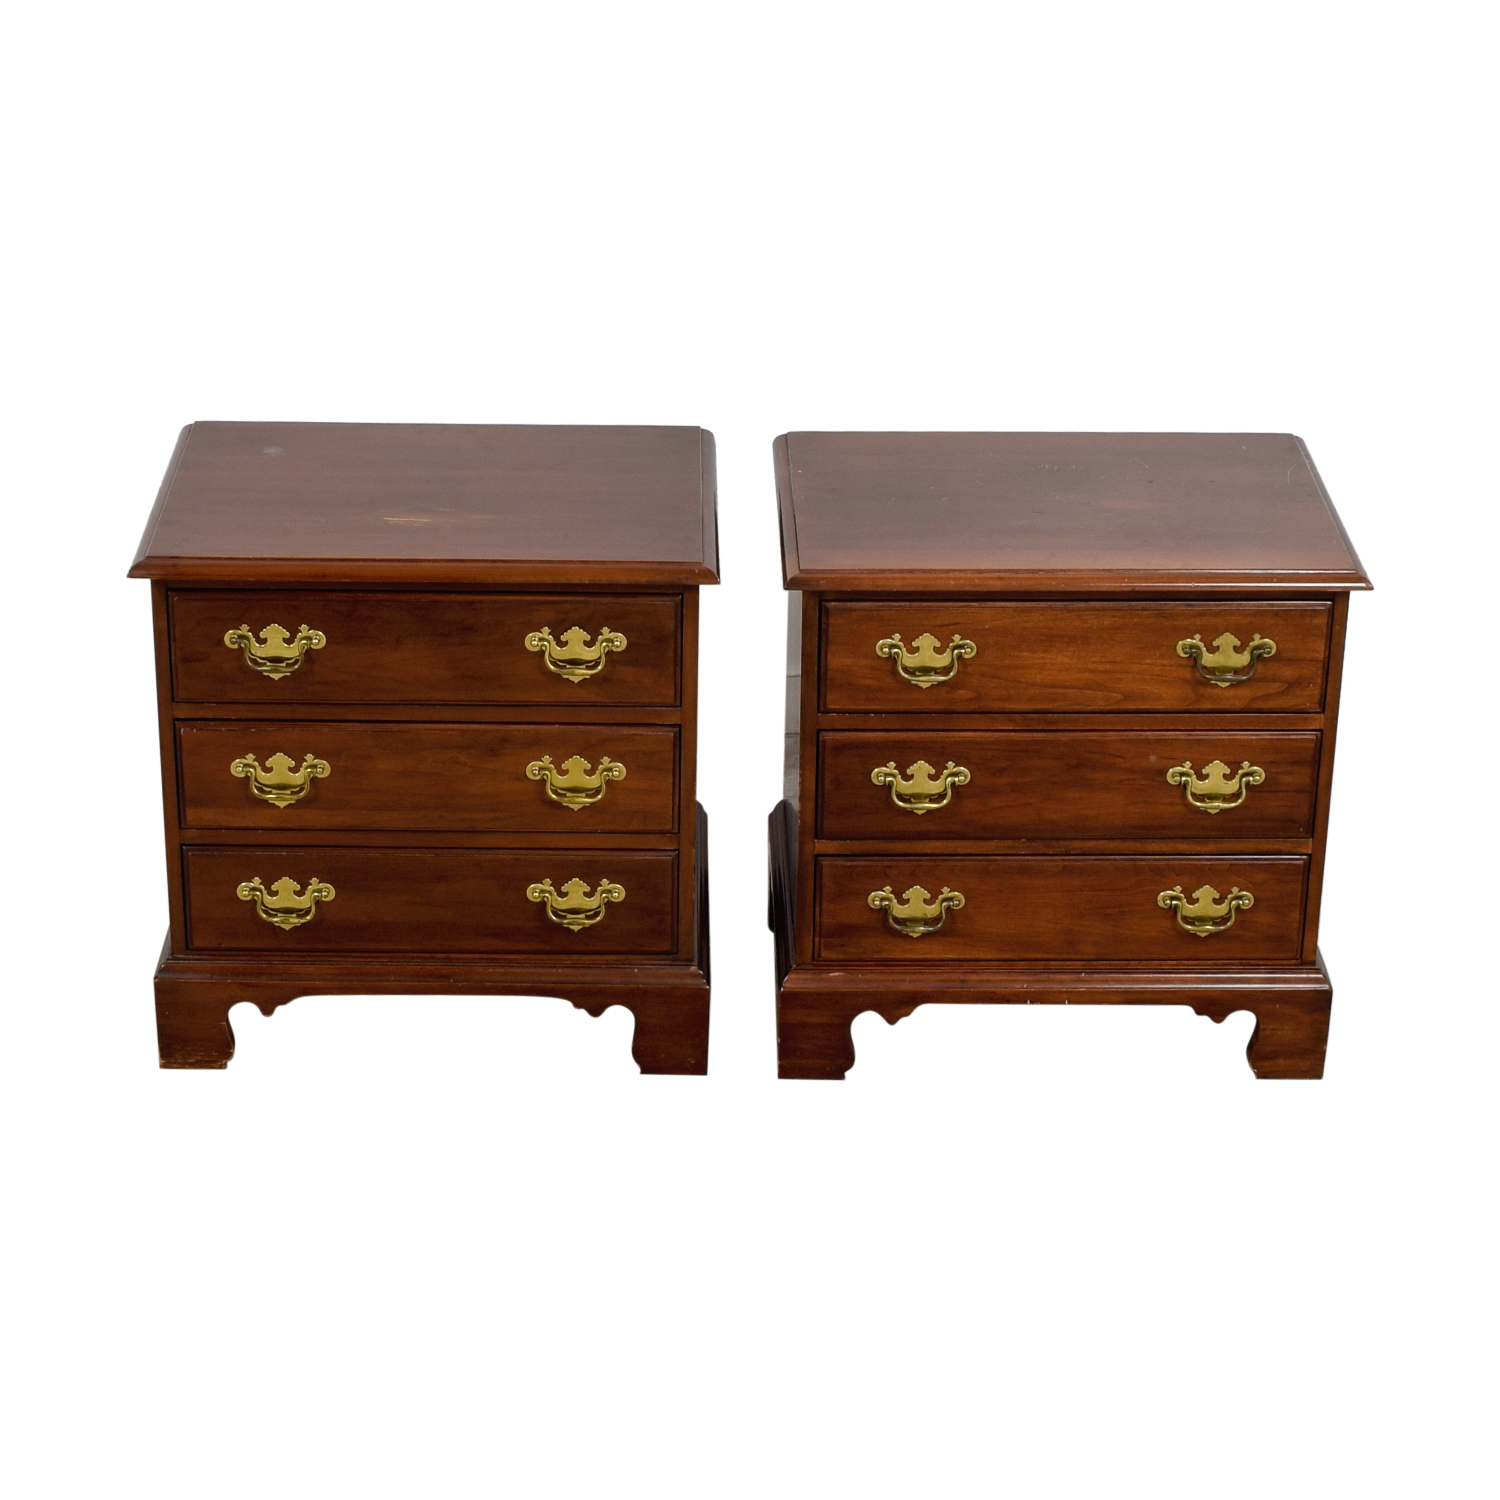 Davis Cabinet Company Davis Cabinet Company Three-Drawer Wood End Tables for sale